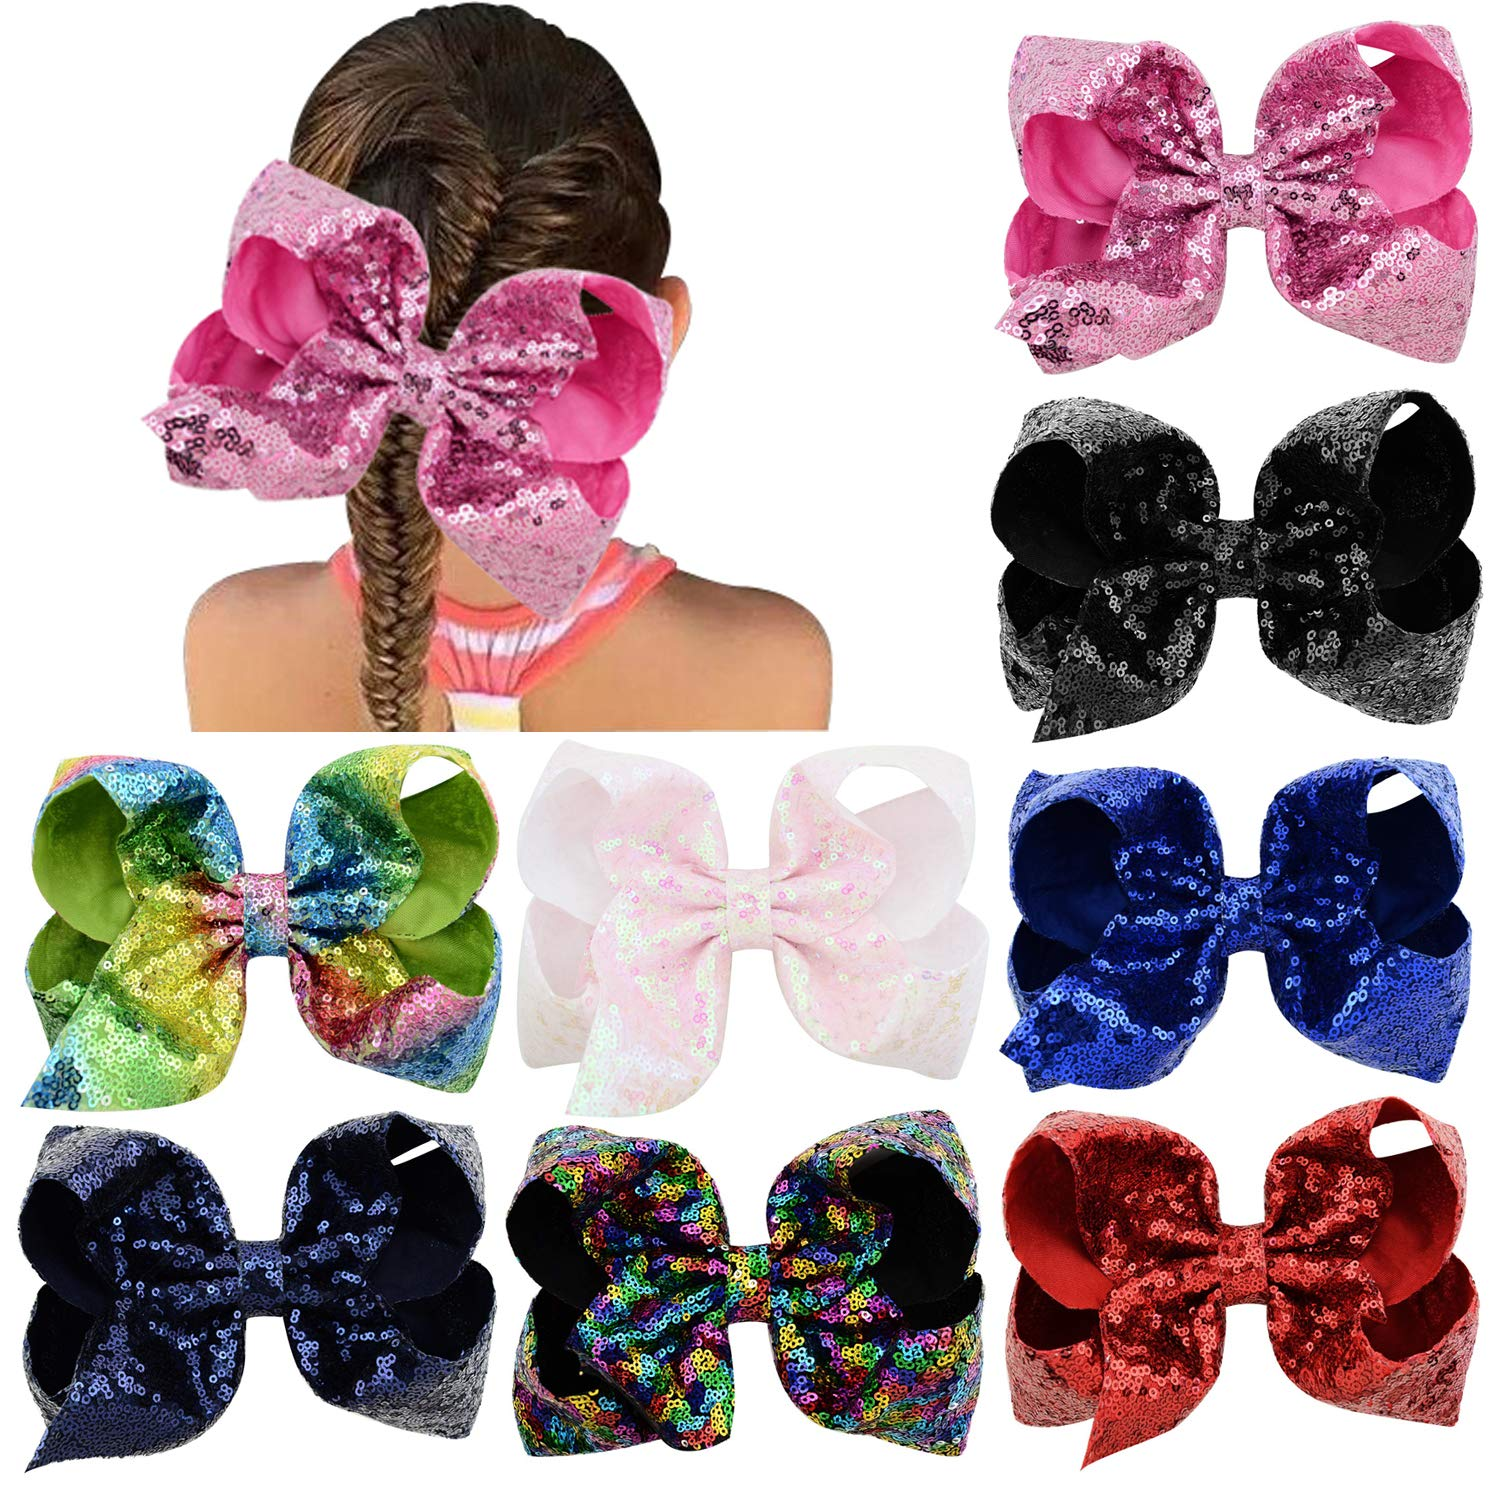 Big 8 Larger Sparkly Glitter Sequins Grosgrain Ribbon Hair Bows Barrettes Alligater Clips for Girls Teens Toddlers Kids Women ALinmo